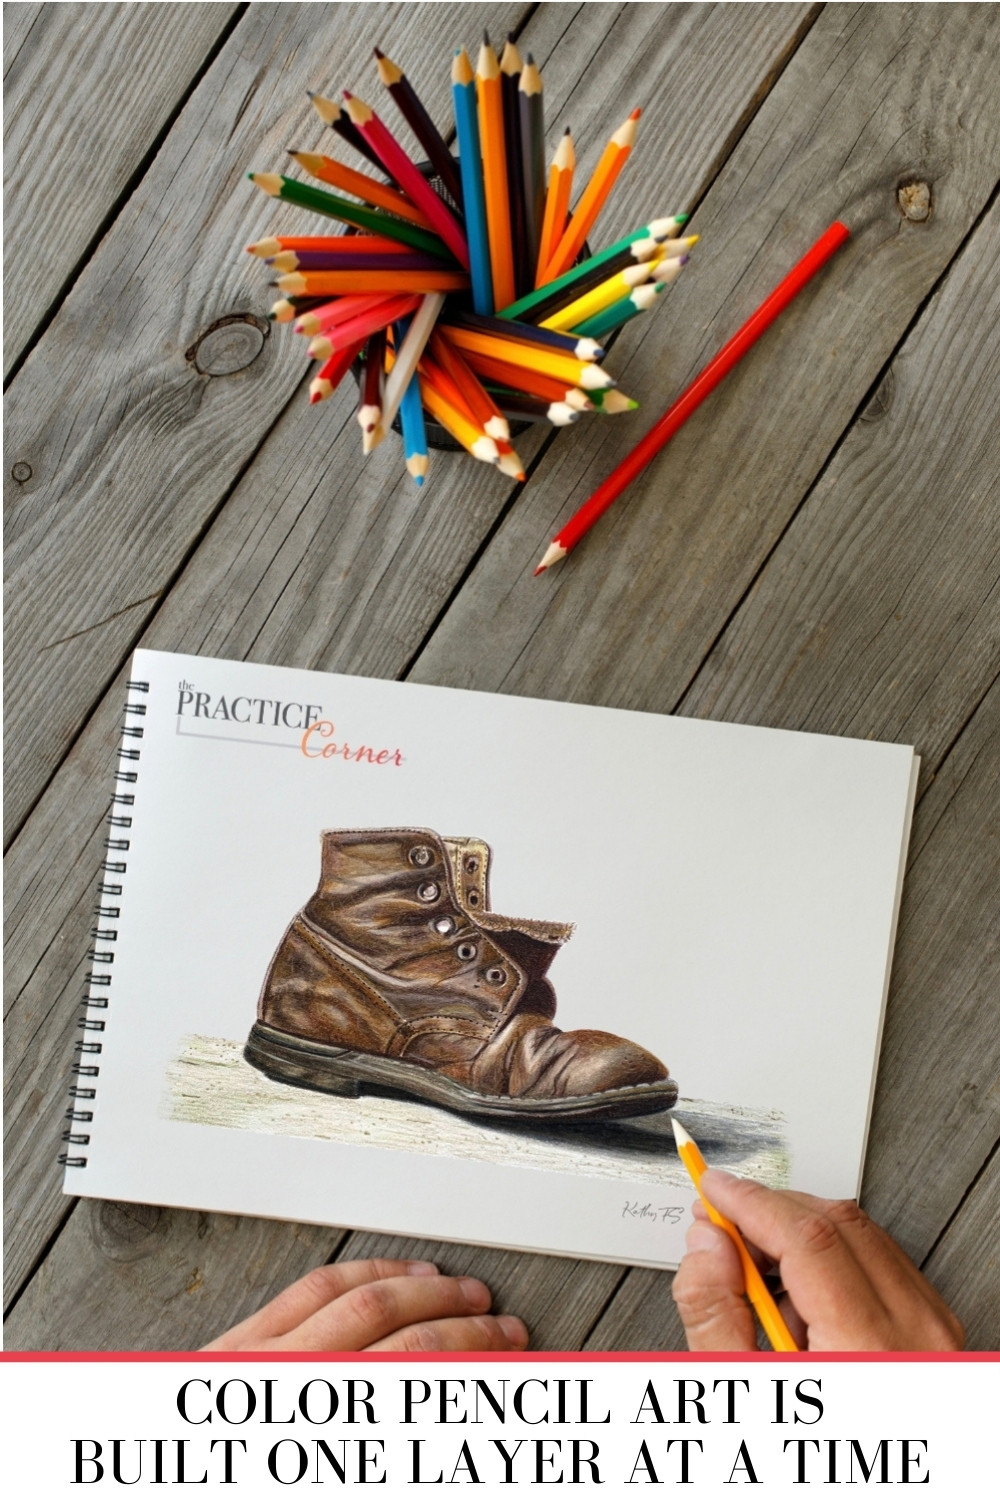 Colored Pencil Art is Built One Layer at a Time. | The Practice Corner | #coloredpencilpractice #layeringcoloredpencil